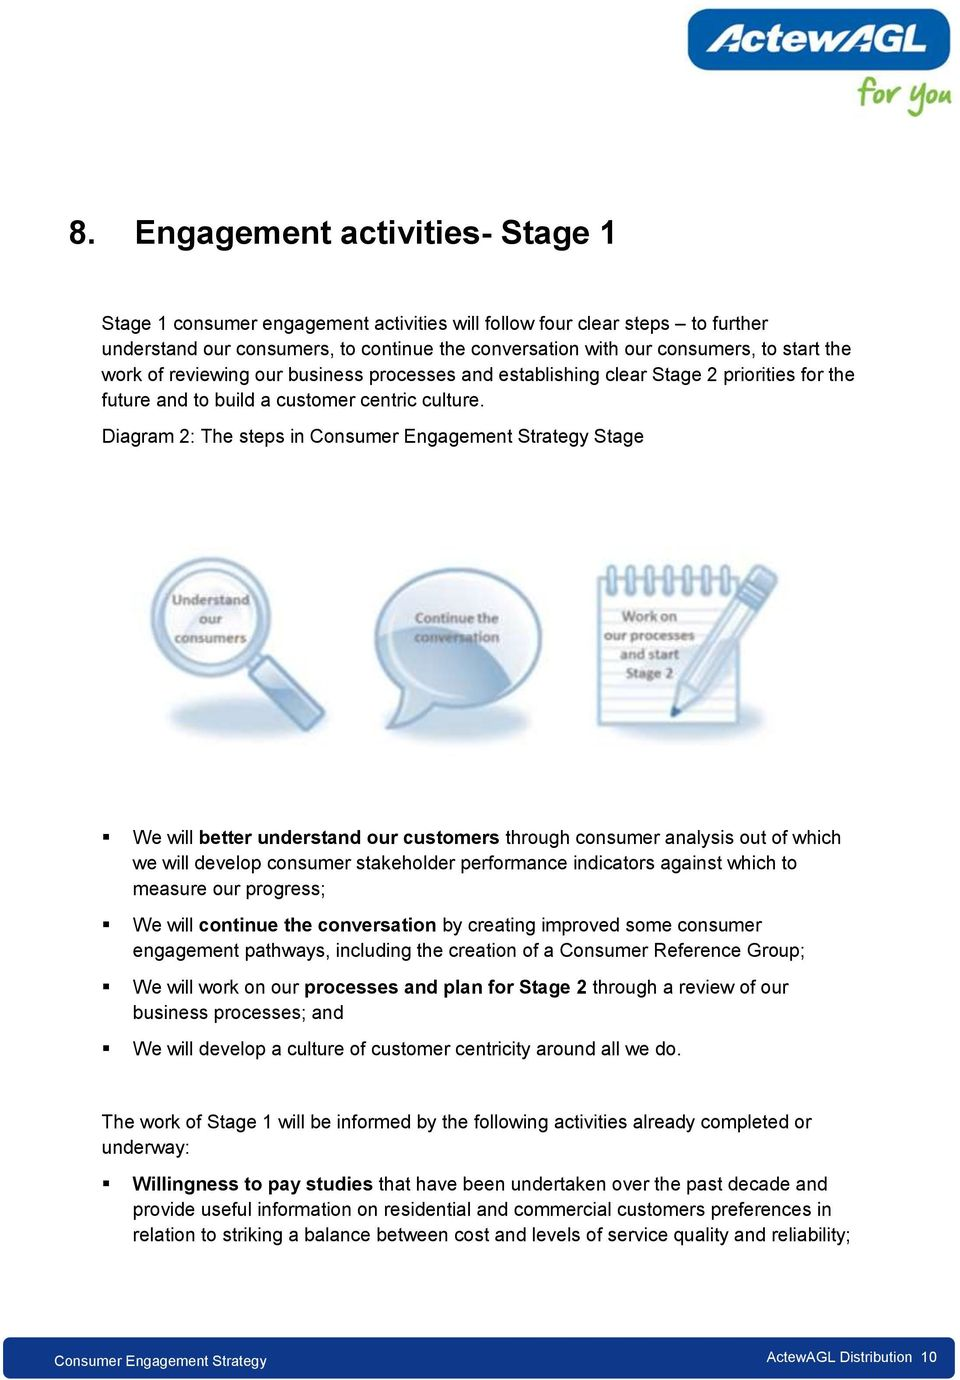 Diagram 2: The steps in Stage We will better understand our customers through consumer analysis out of which we will develop consumer stakeholder performance indicators against which to measure our